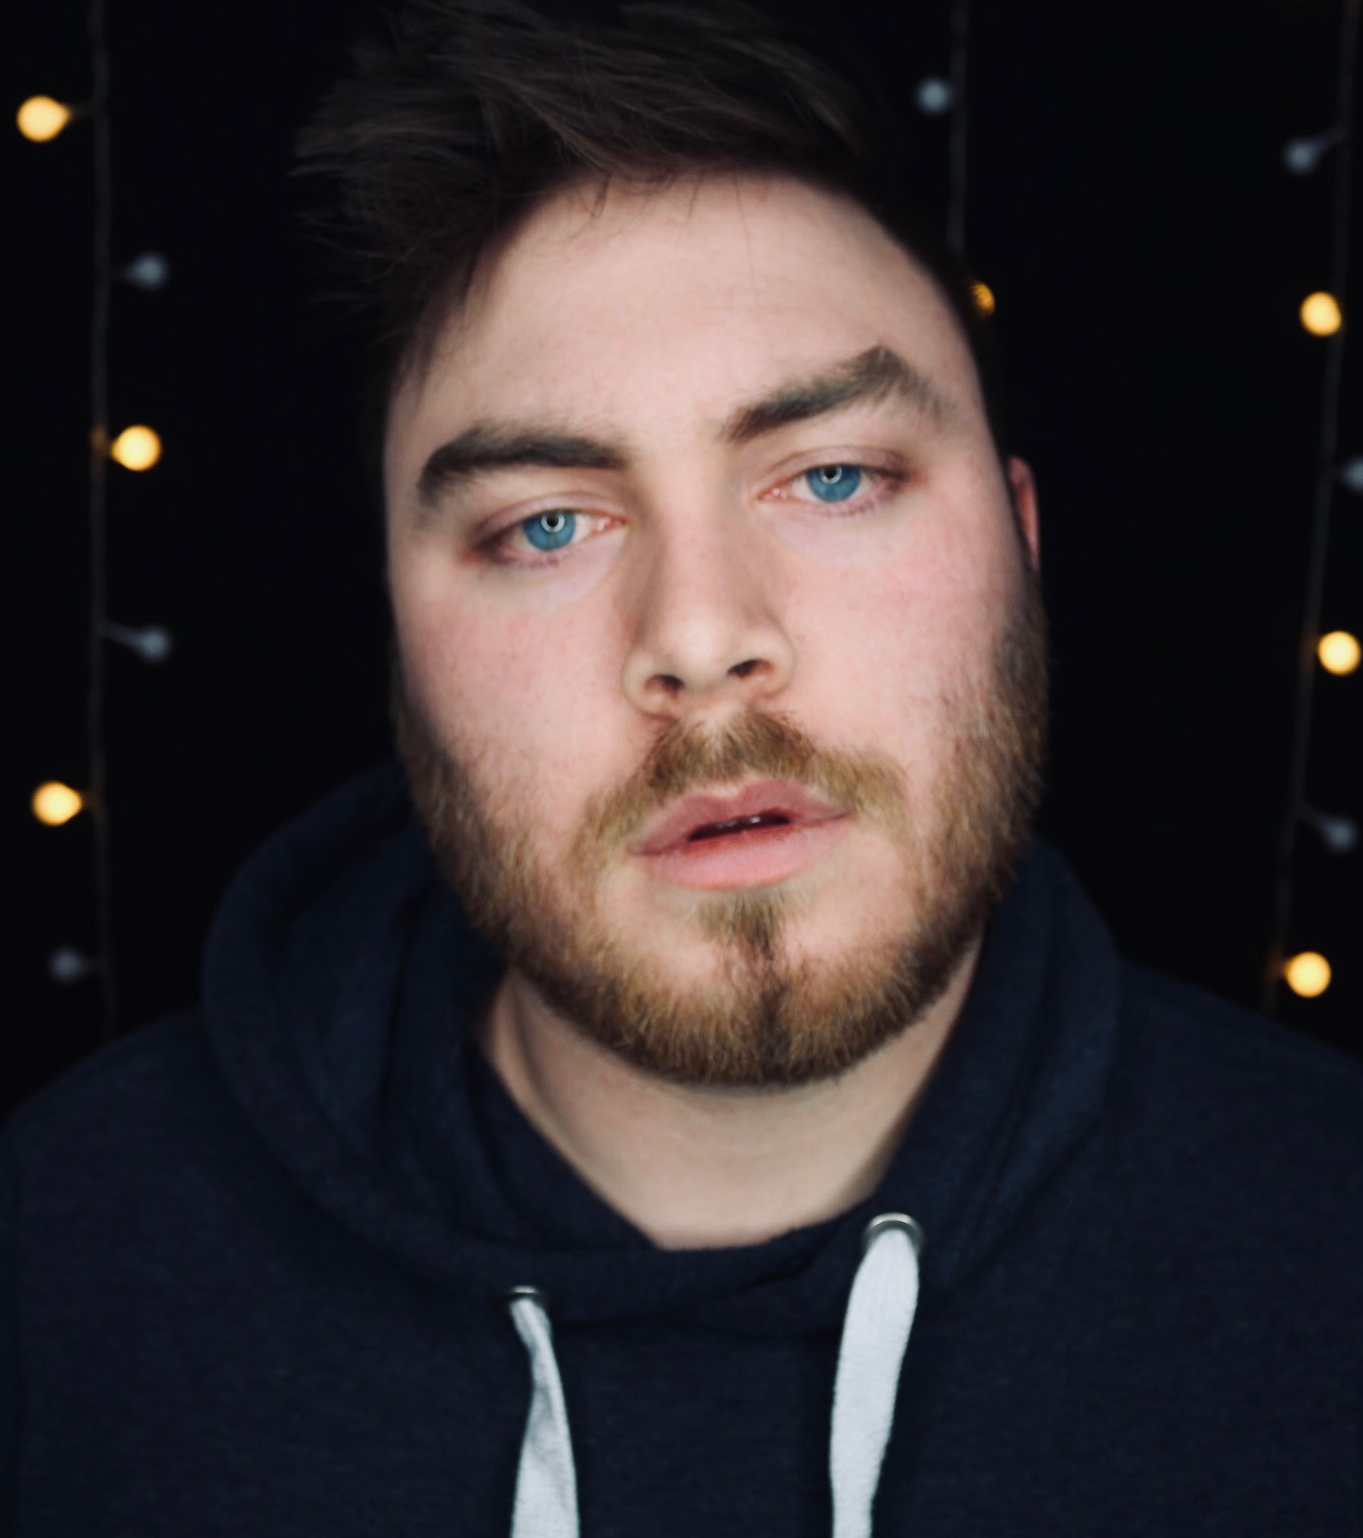 Wes Fowler's music is a blend of acoustic pop, folk and hip hop. His sound will remind you of the sweetness of Damien Rice and the melodic sensibility of Ed Sheeran. He began making a name for himself in Toronto's small club scene for his trademark vocal tone and well-crafted, rhythmically driven songs. -